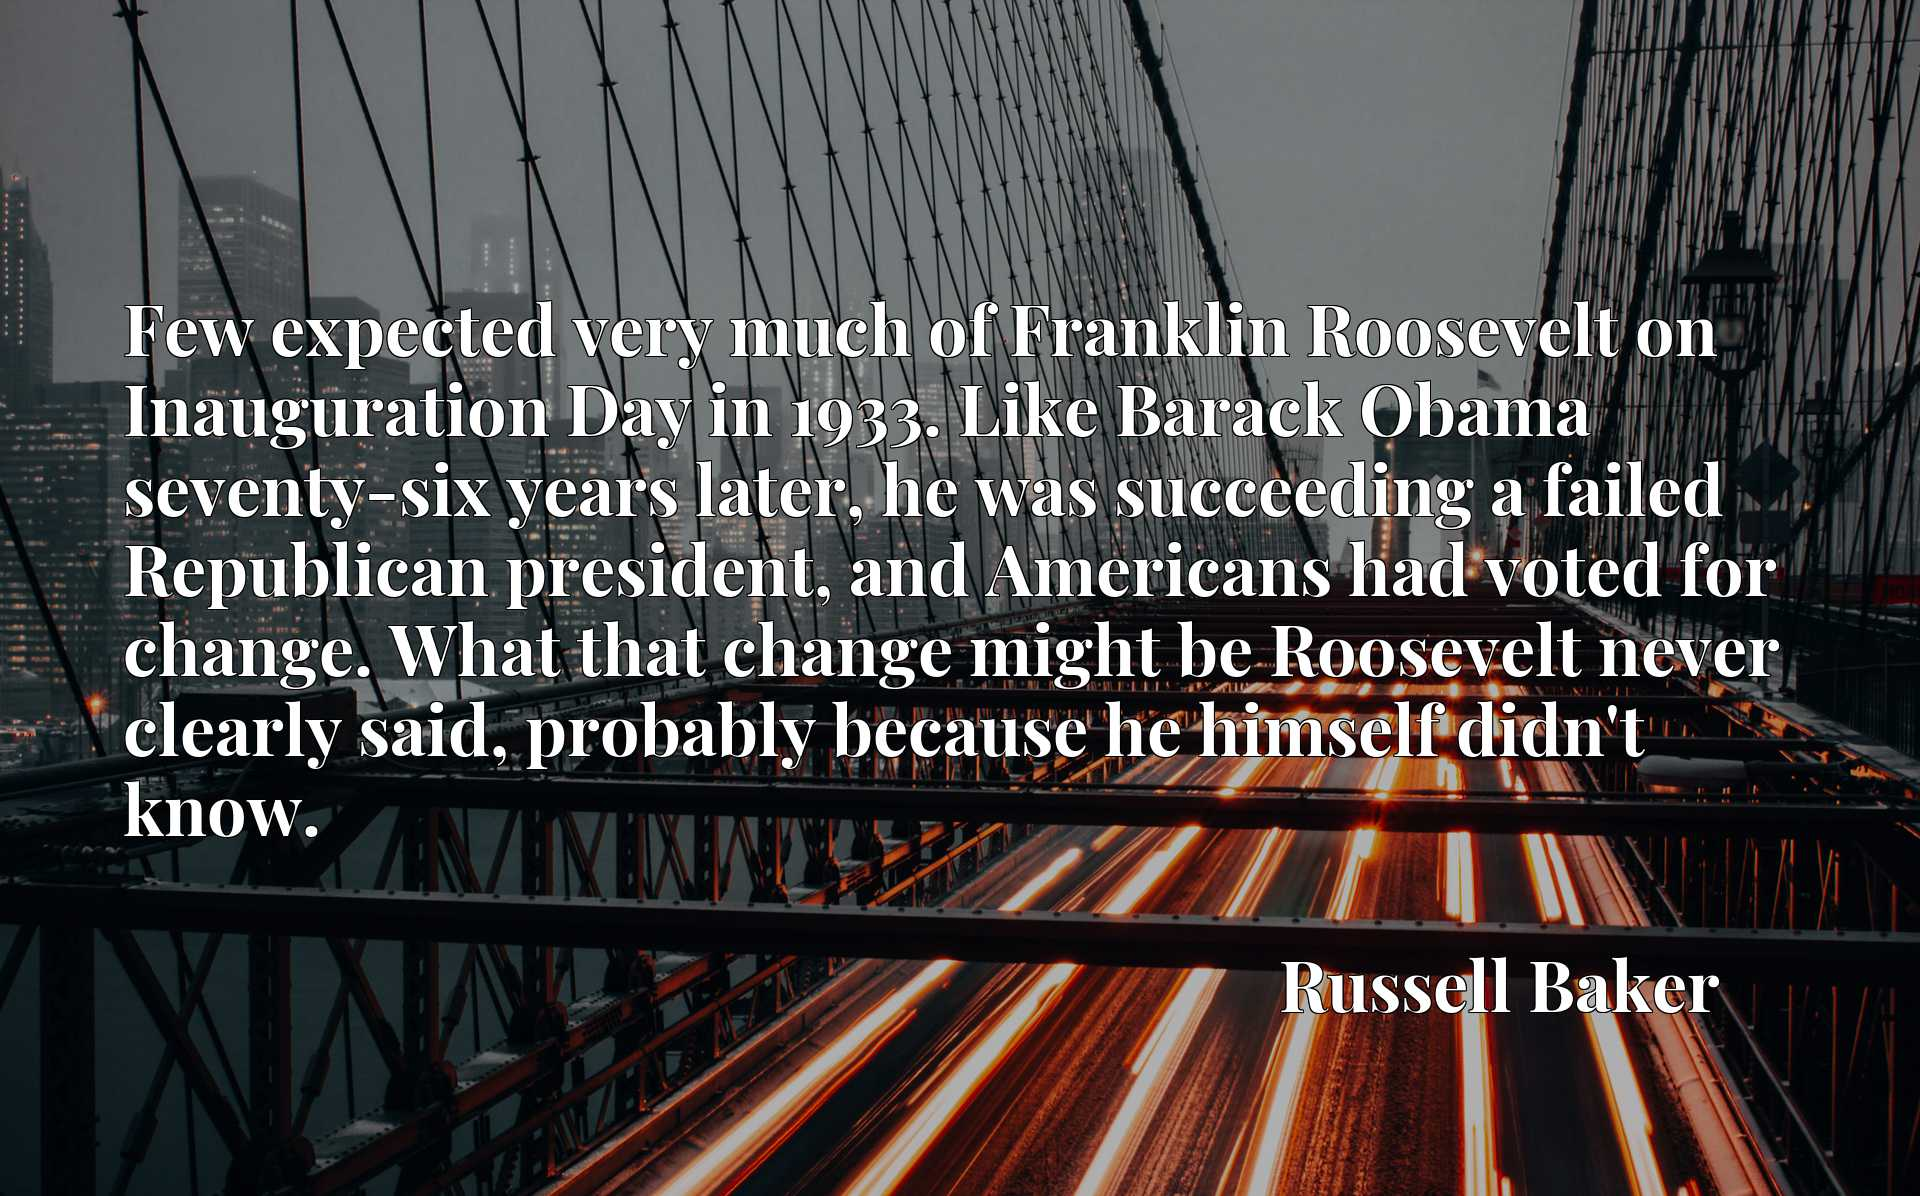 Few expected very much of Franklin Roosevelt on Inauguration Day in 1933. Like Barack Obama seventy-six years later, he was succeeding a failed Republican president, and Americans had voted for change. What that change might be Roosevelt never clearly said, probably because he himself didn't know.